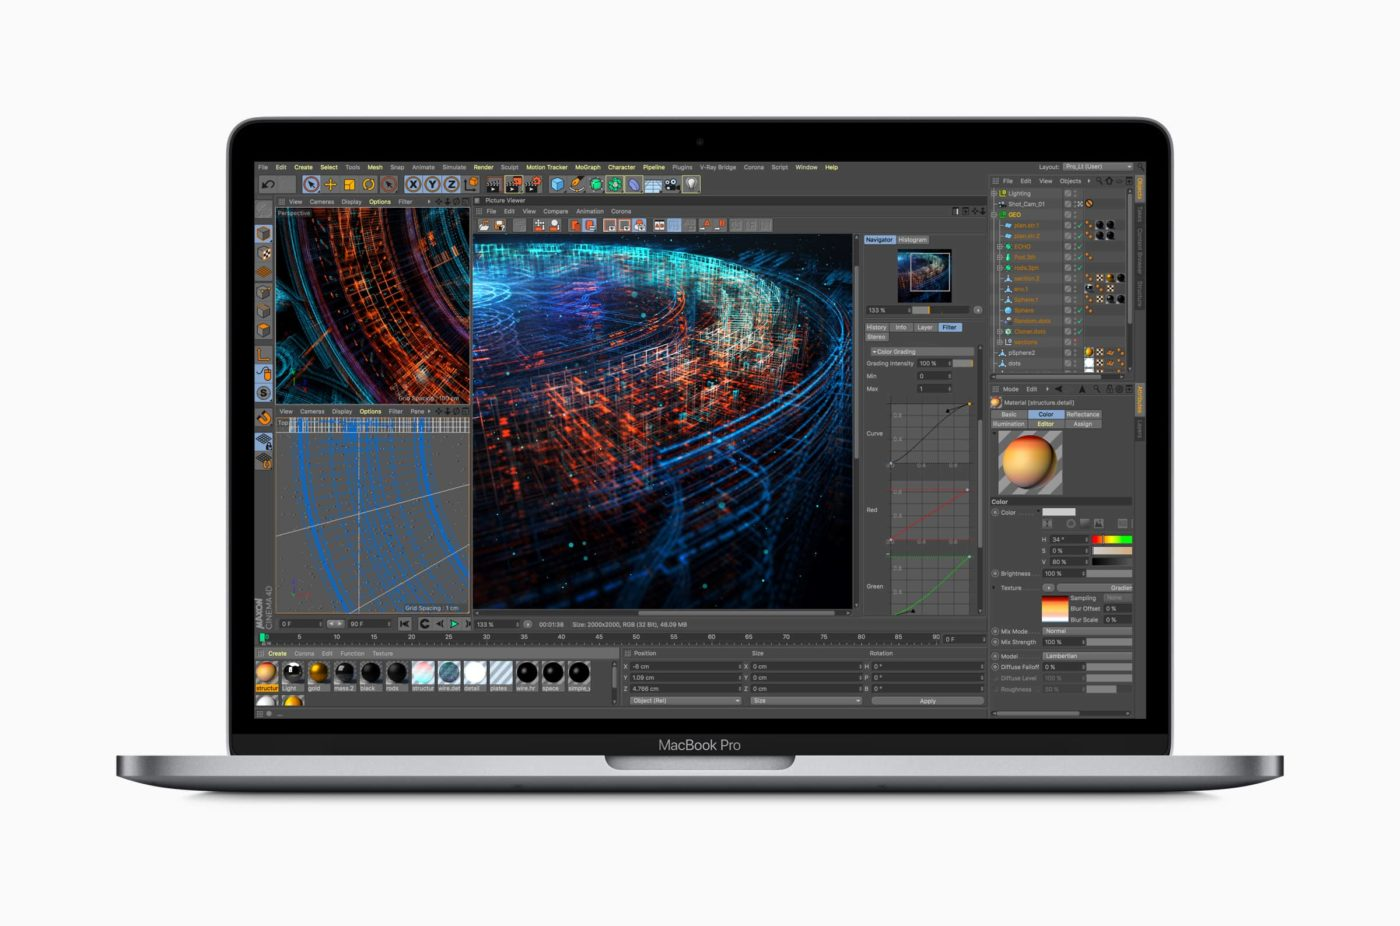 New Core i7 and i9 Processors Are Coming To The Macbook Pro Lineup, Starting at $1799 1